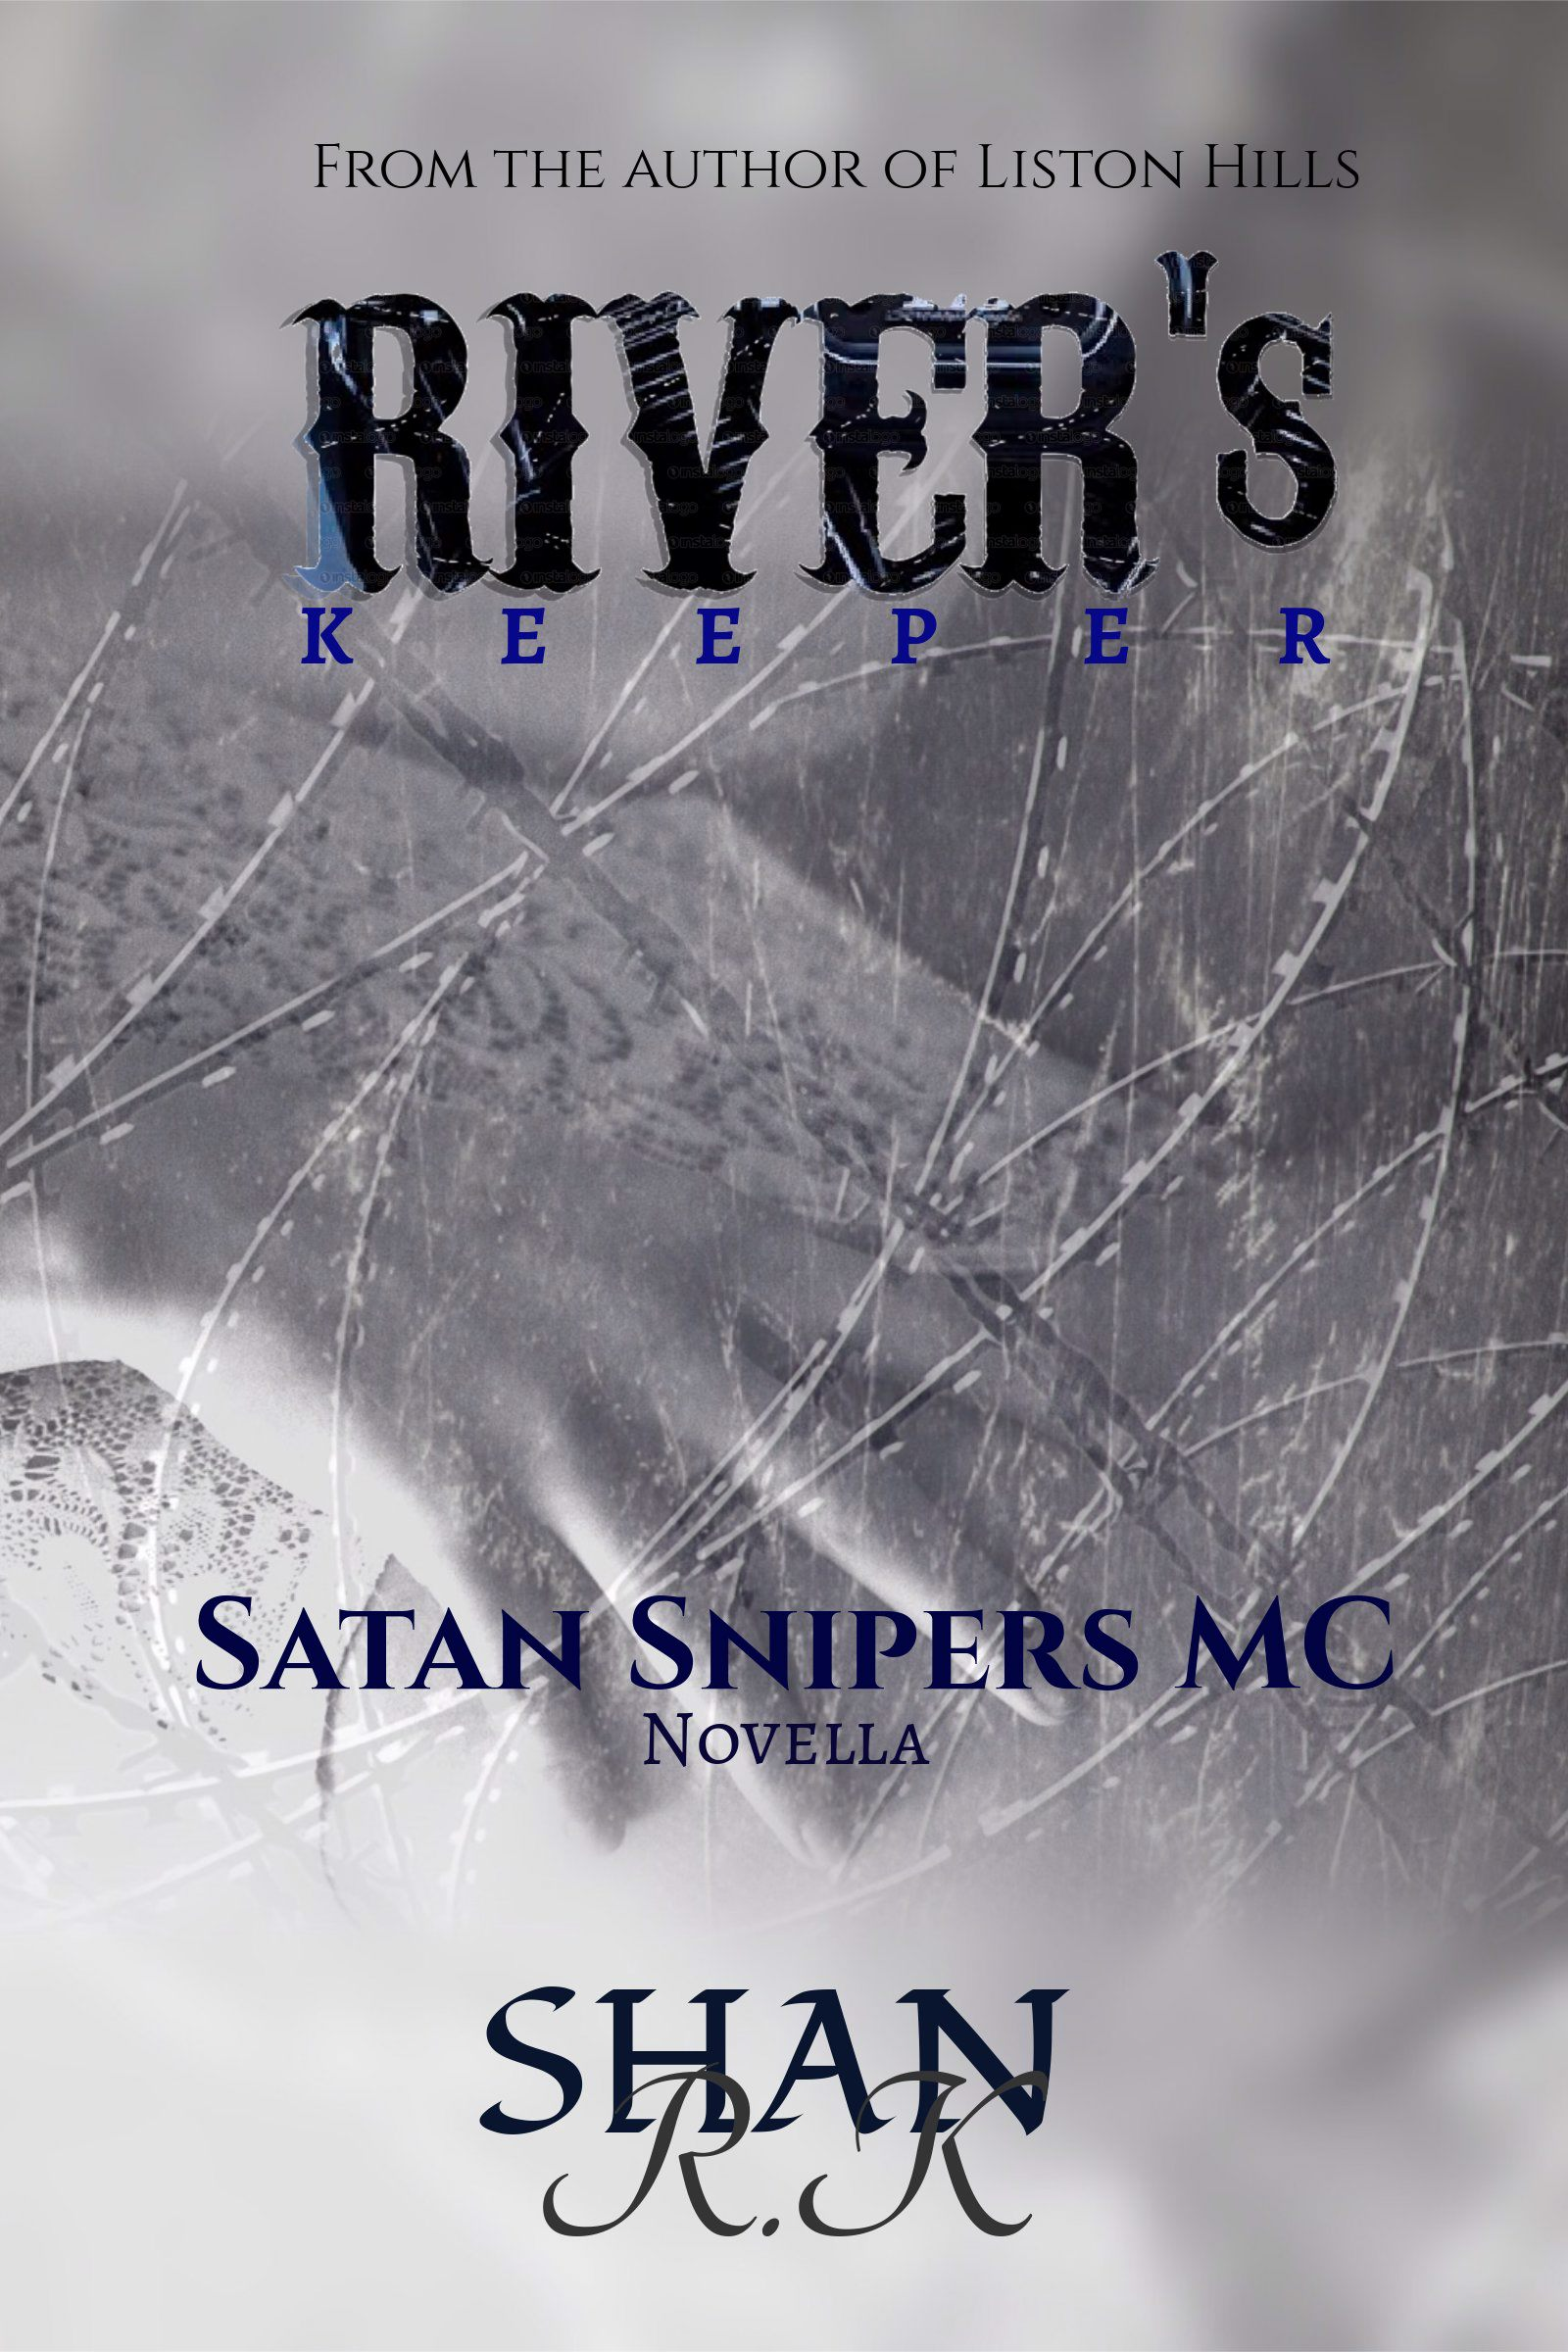 The Satan Sniper's Motorcycle Club Book 2